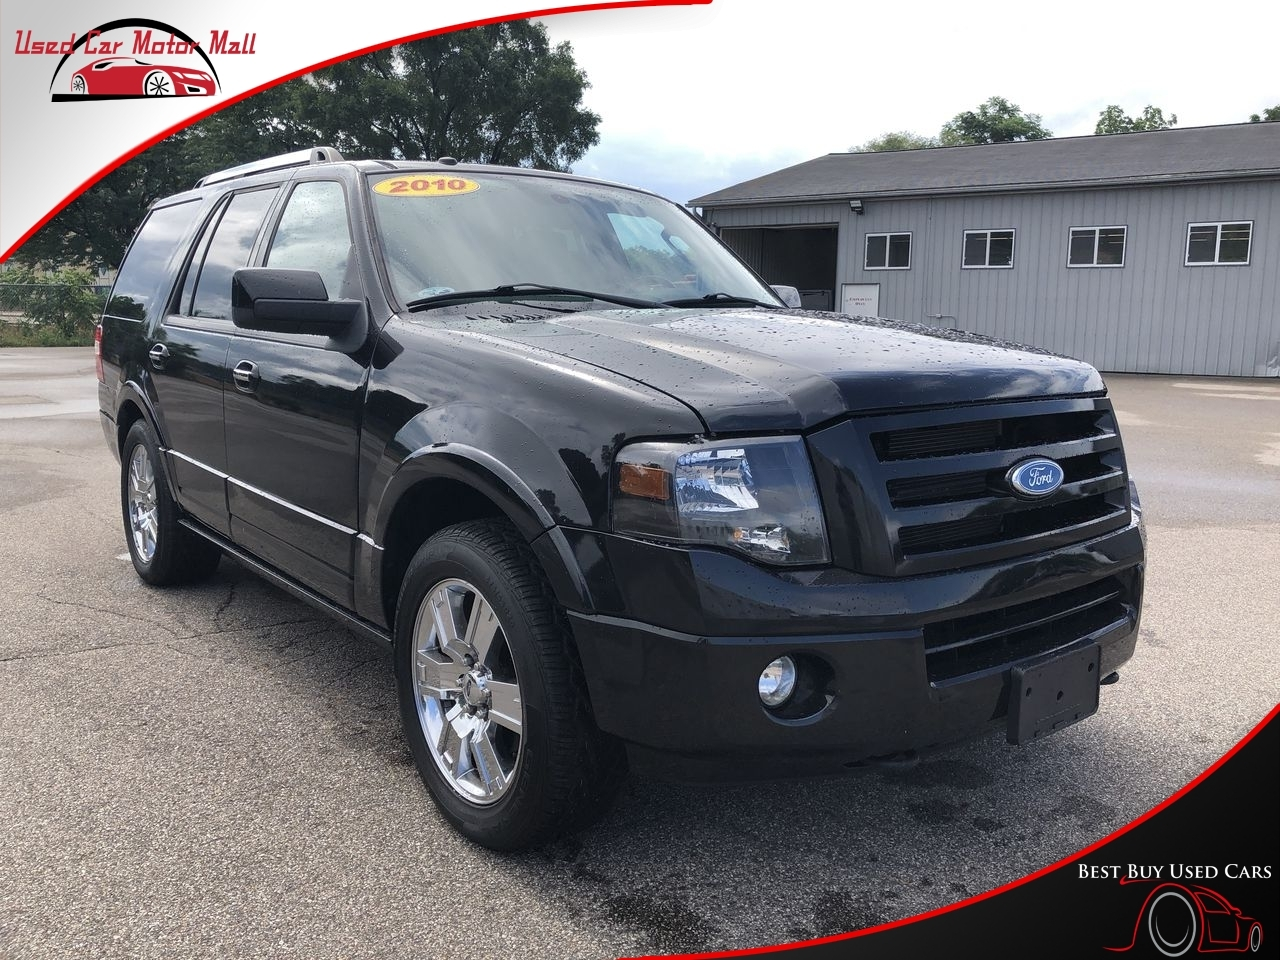 2013 Ford Explorer XLT, A16131, Photo 1